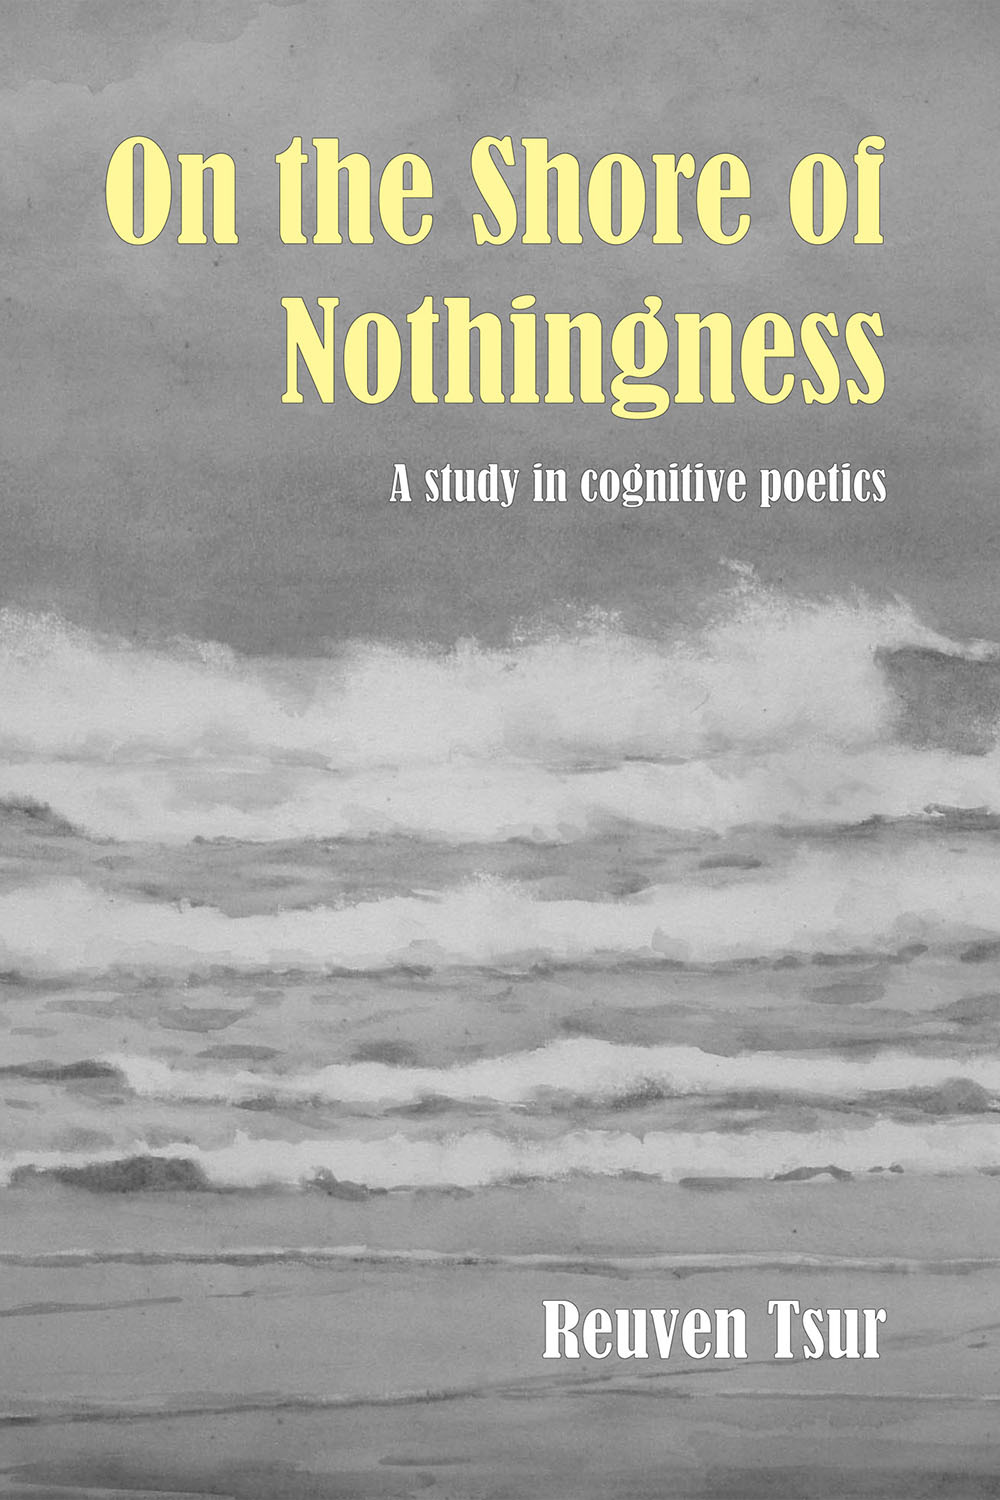 On the Shore of Nothingness